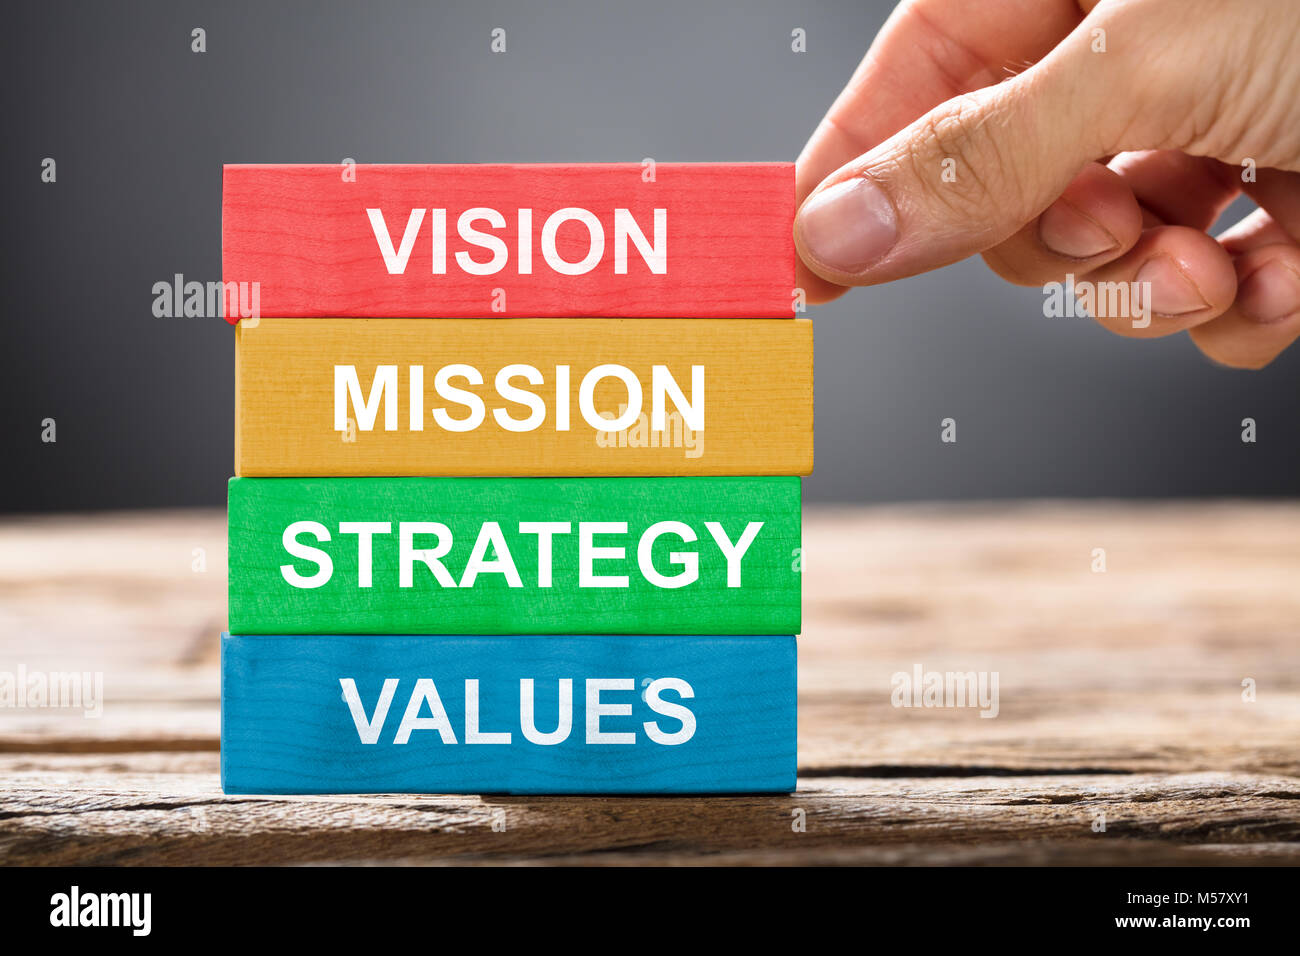 Closeup of hand building colorful blocks of vision mission strategy and values on wood - Stock Image